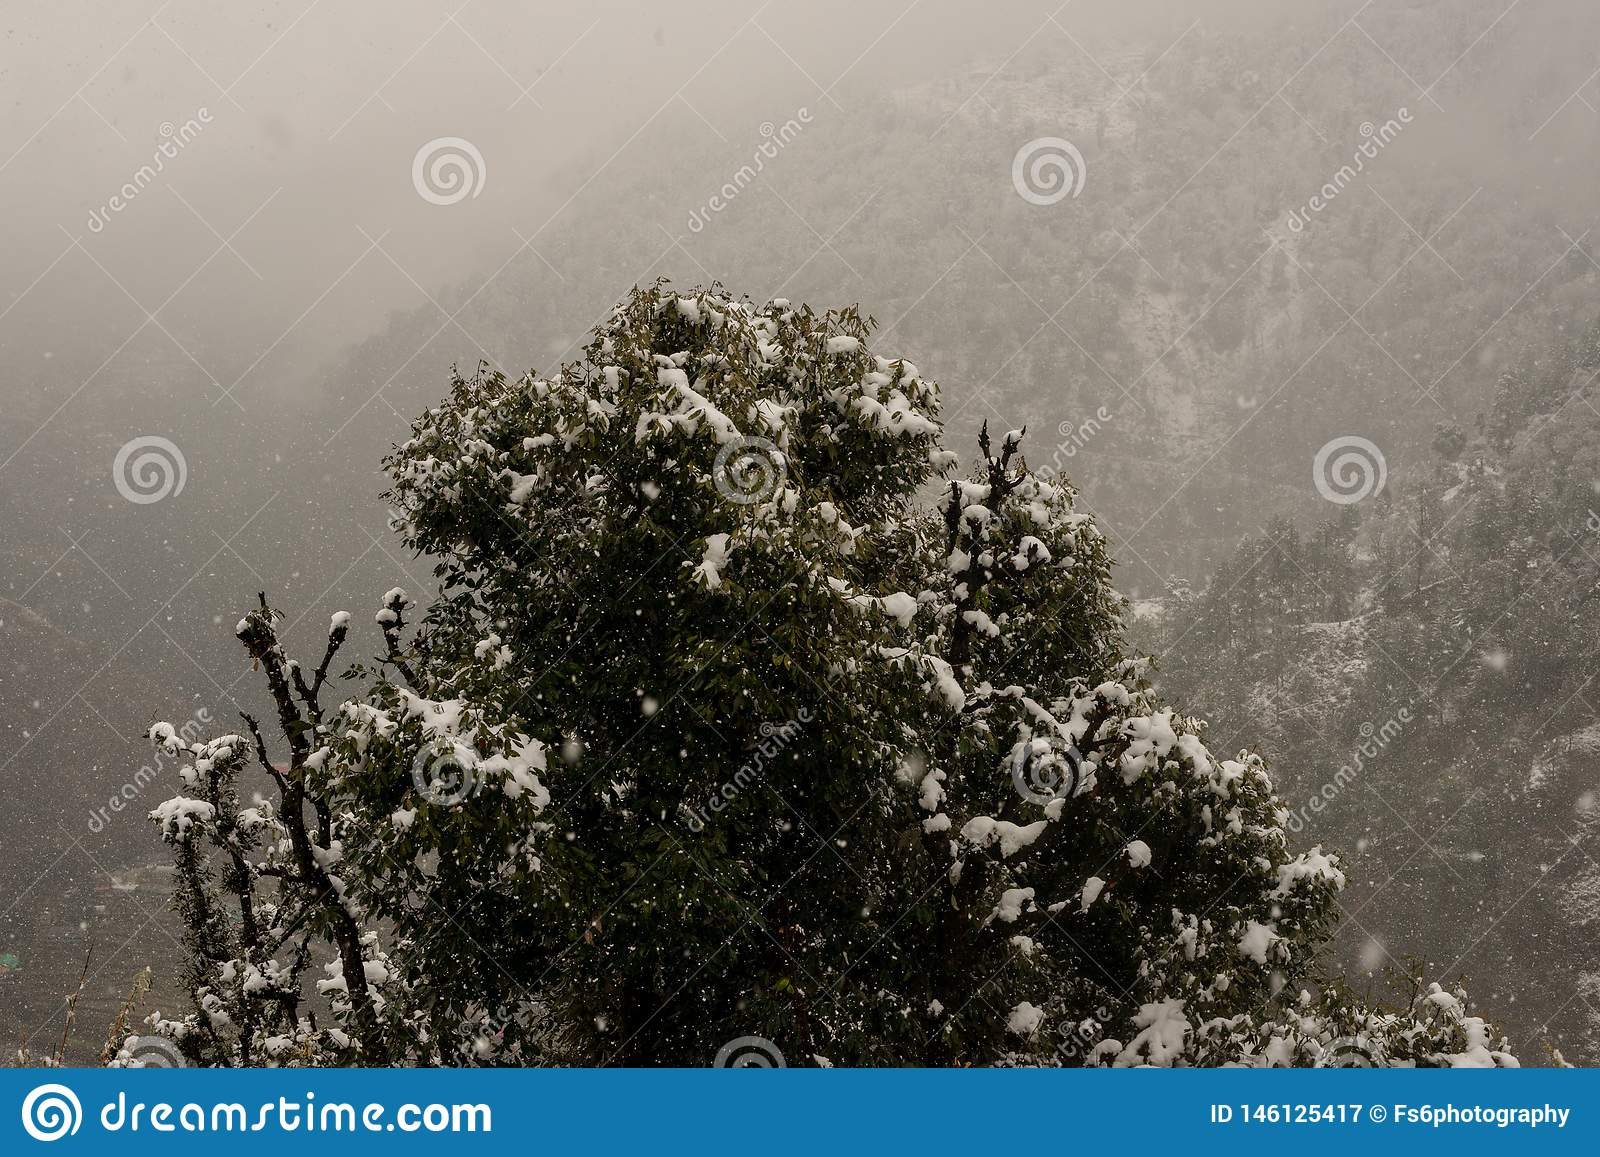 Winter landscape. Tree and dry grass plants in the snow. Snow caped mountain range in blurred background